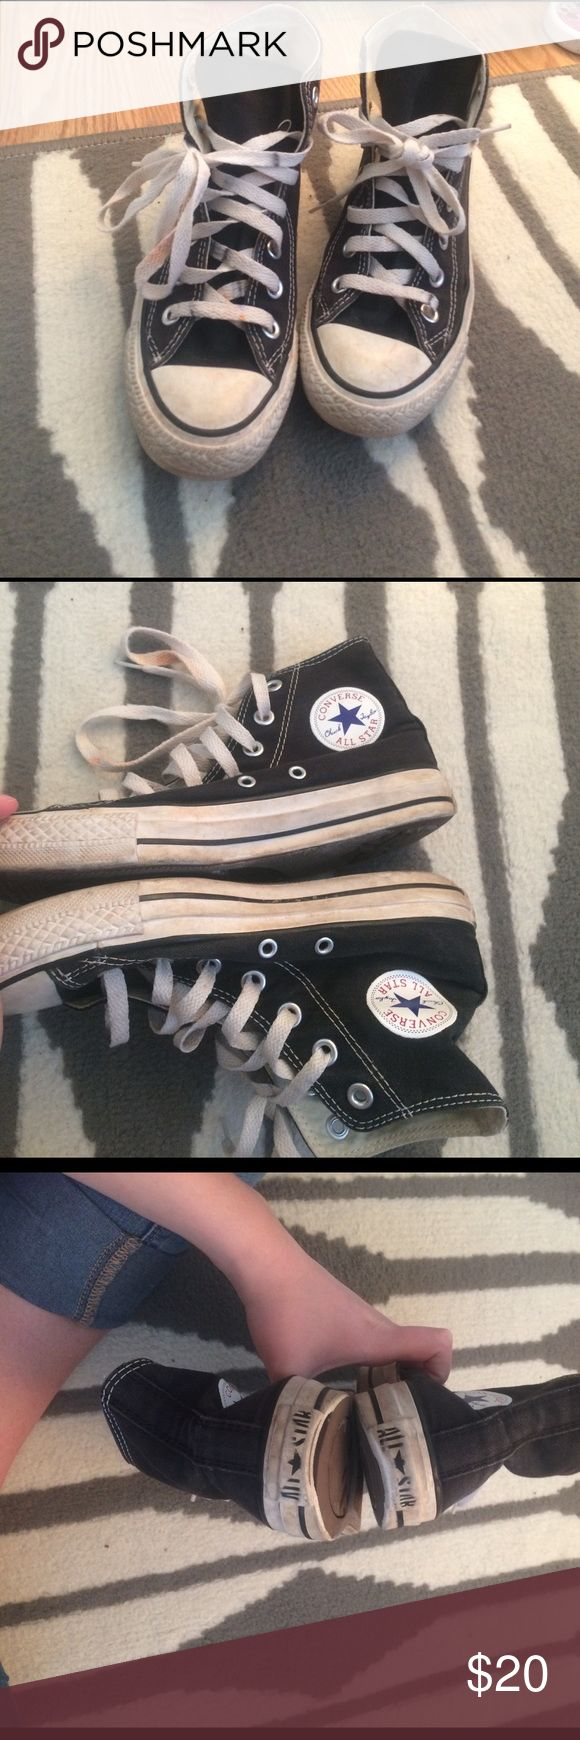 High top black converse Shoe laces have paint on them but can be replaced. Loved these! Wore them a lot but always with socks. Still in good condition! Heals are a little worn out but these are built to last! These are child 3.5 but are a woman's 5.5 and can also fit a 6! Converse Shoes Sneakers